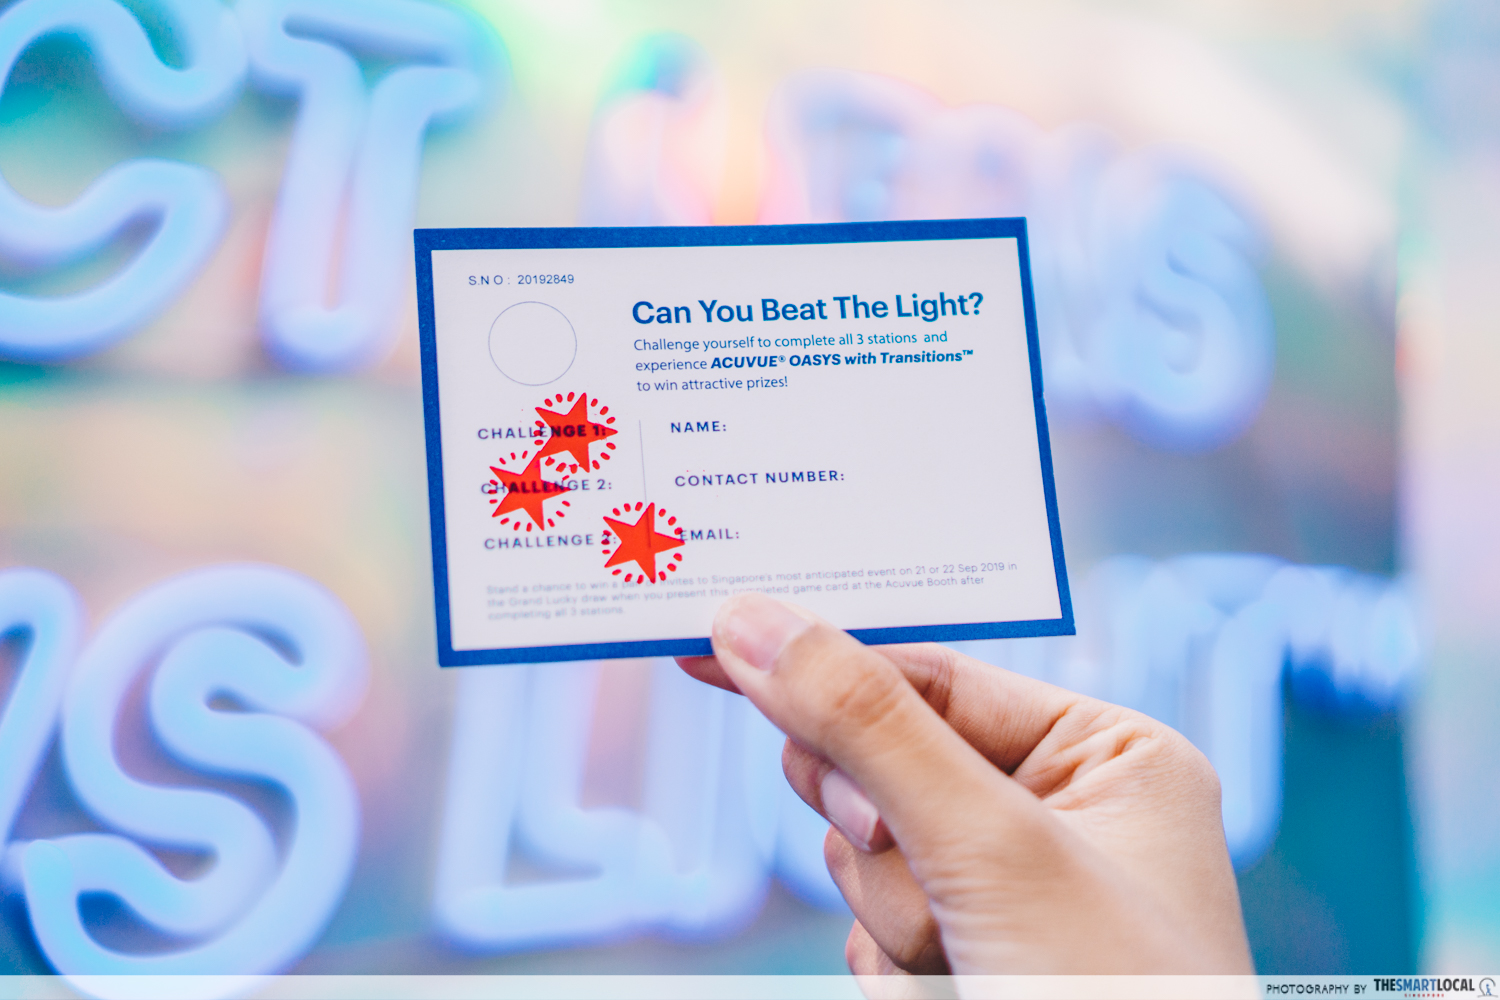 ACUVUE's Pop-up card